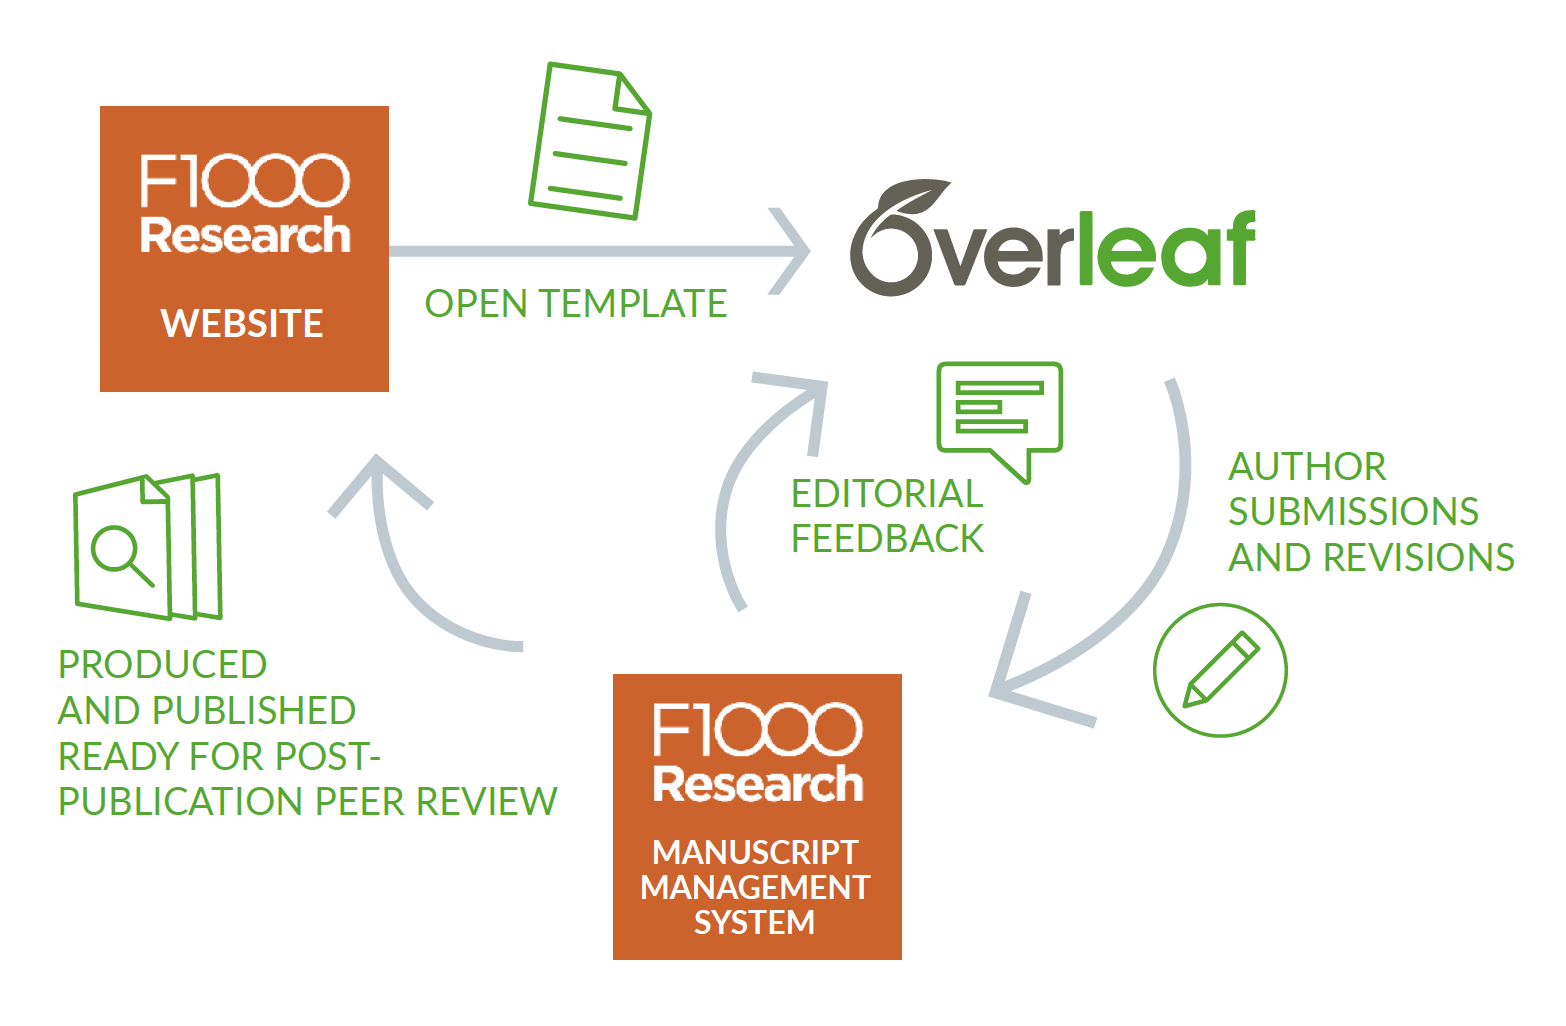 Overleaf Link and Workflow Diagram with F1000Research